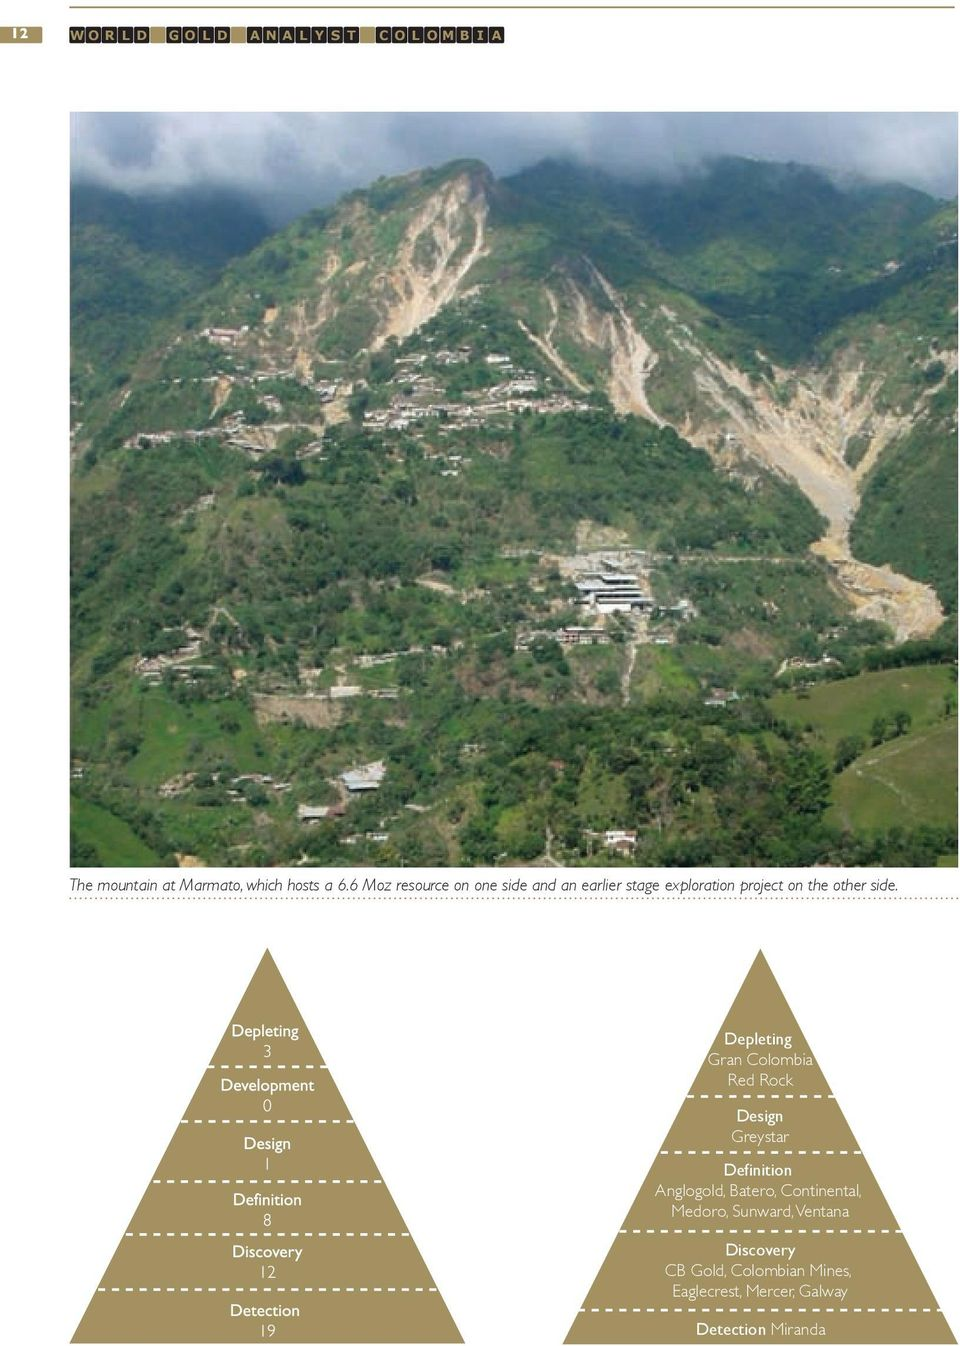 depleting Gran Colombia Red Rock design Greystar definition Anglogold, Batero,